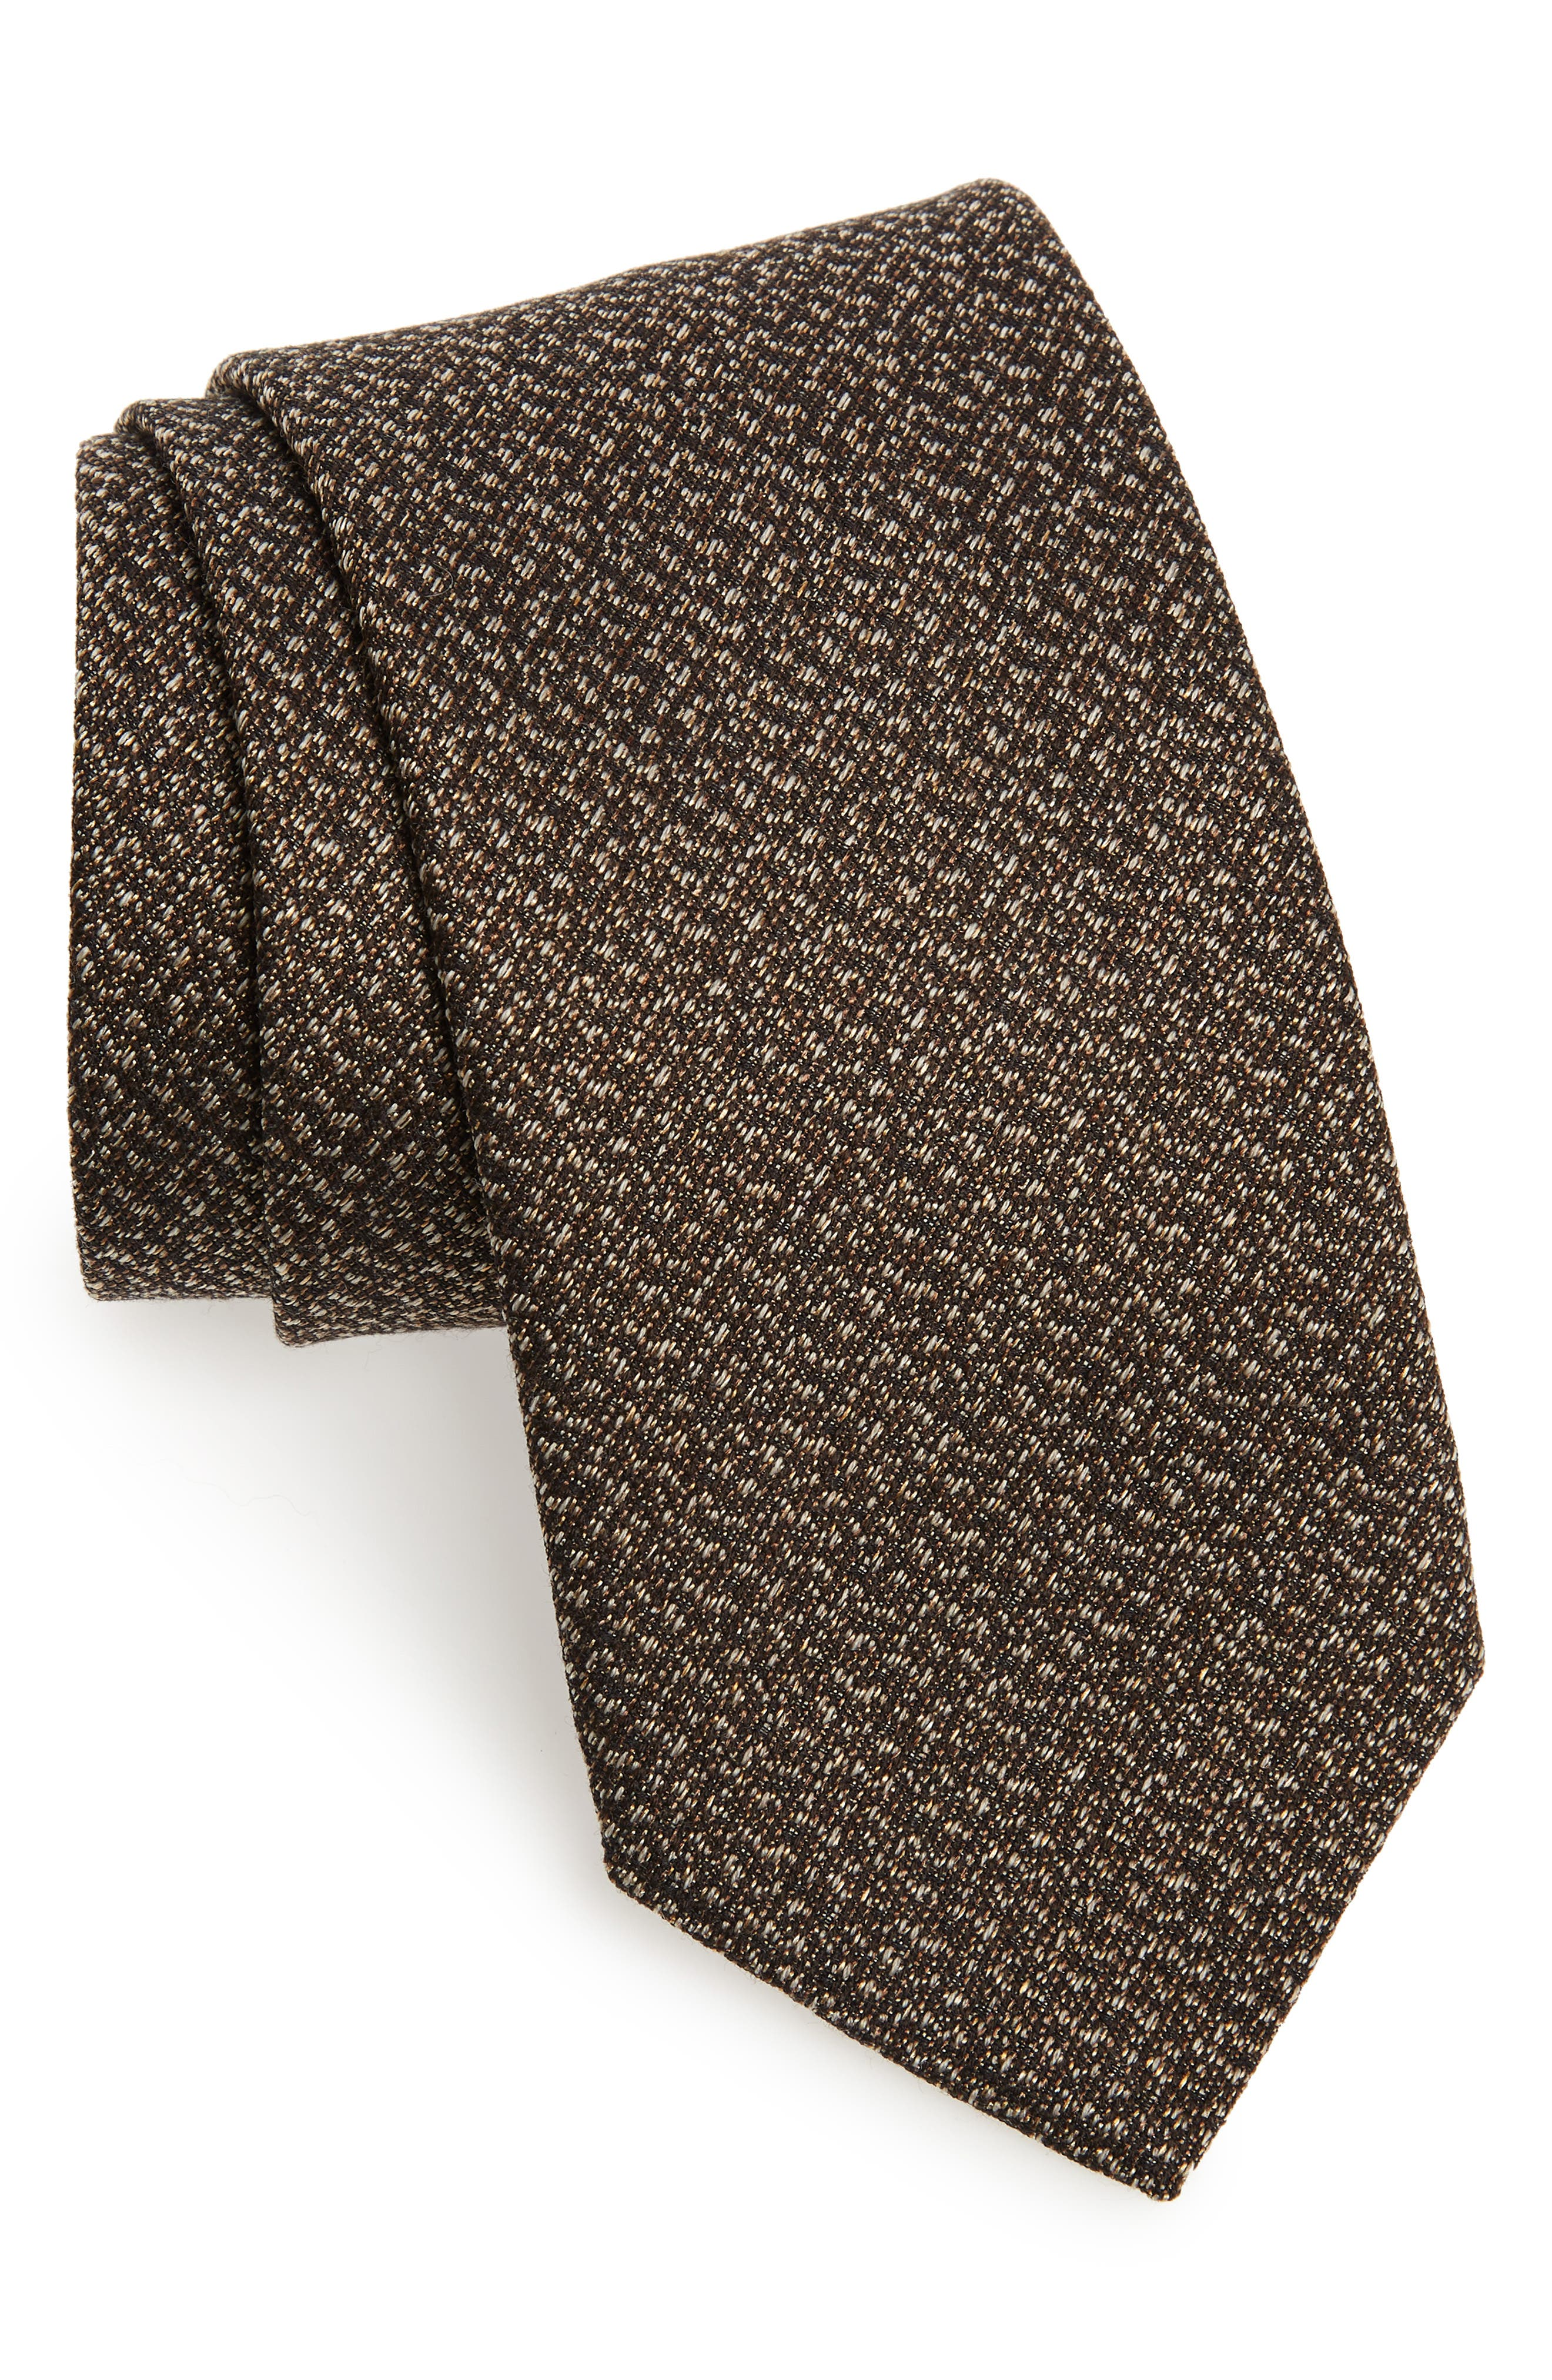 Solid Silk & Cotton Tie,                             Main thumbnail 1, color,                             CHOCOLATE